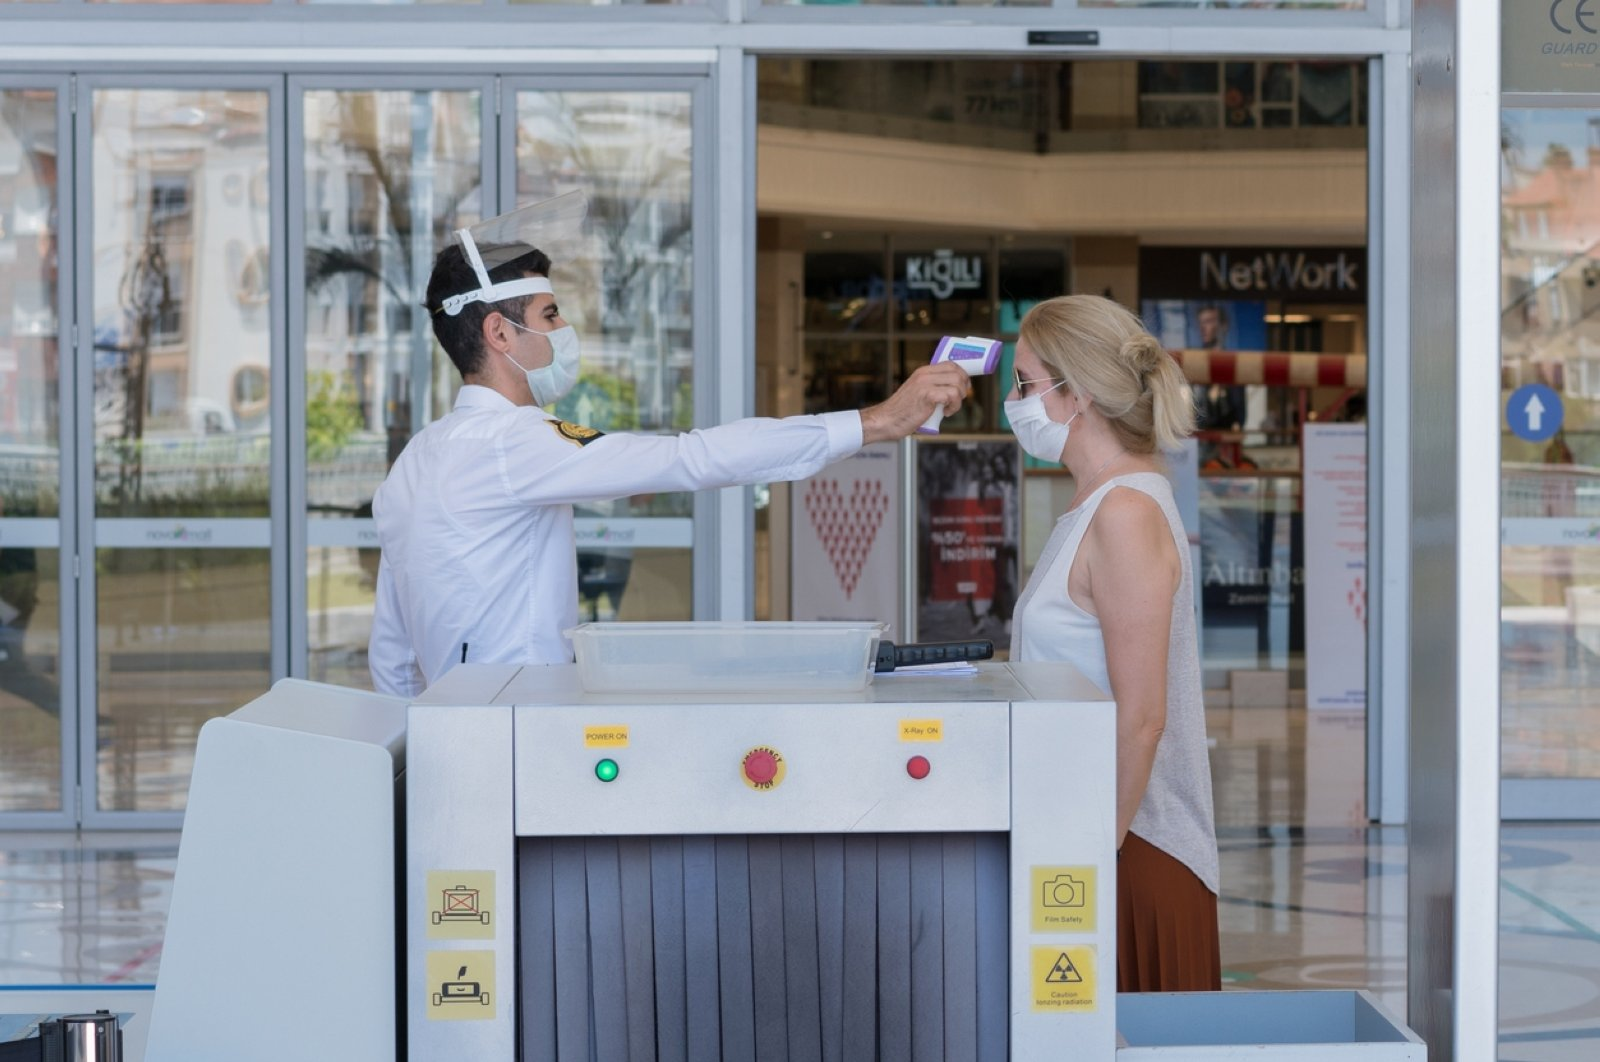 A shopping mall worker checks the temperature of a customer as a precaution against the coronavirus pandemic, Antalya, southern Turkey, June 8, 2020. (iStock Photo by Mustafa Gül)